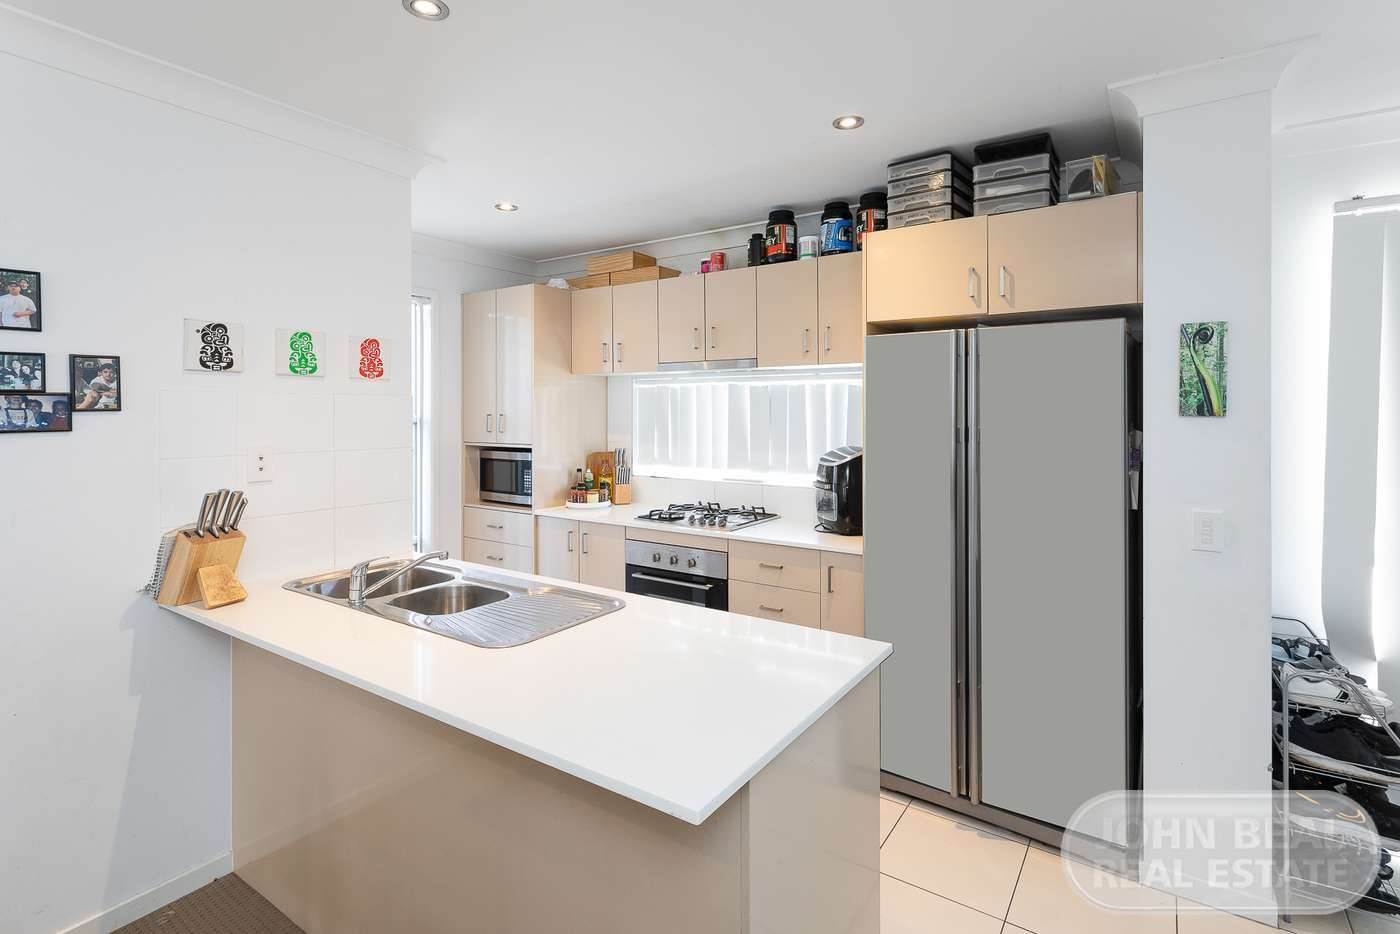 Main view of Homely townhouse listing, Unit 30/1-49 Lavender Dr, Griffin QLD 4503